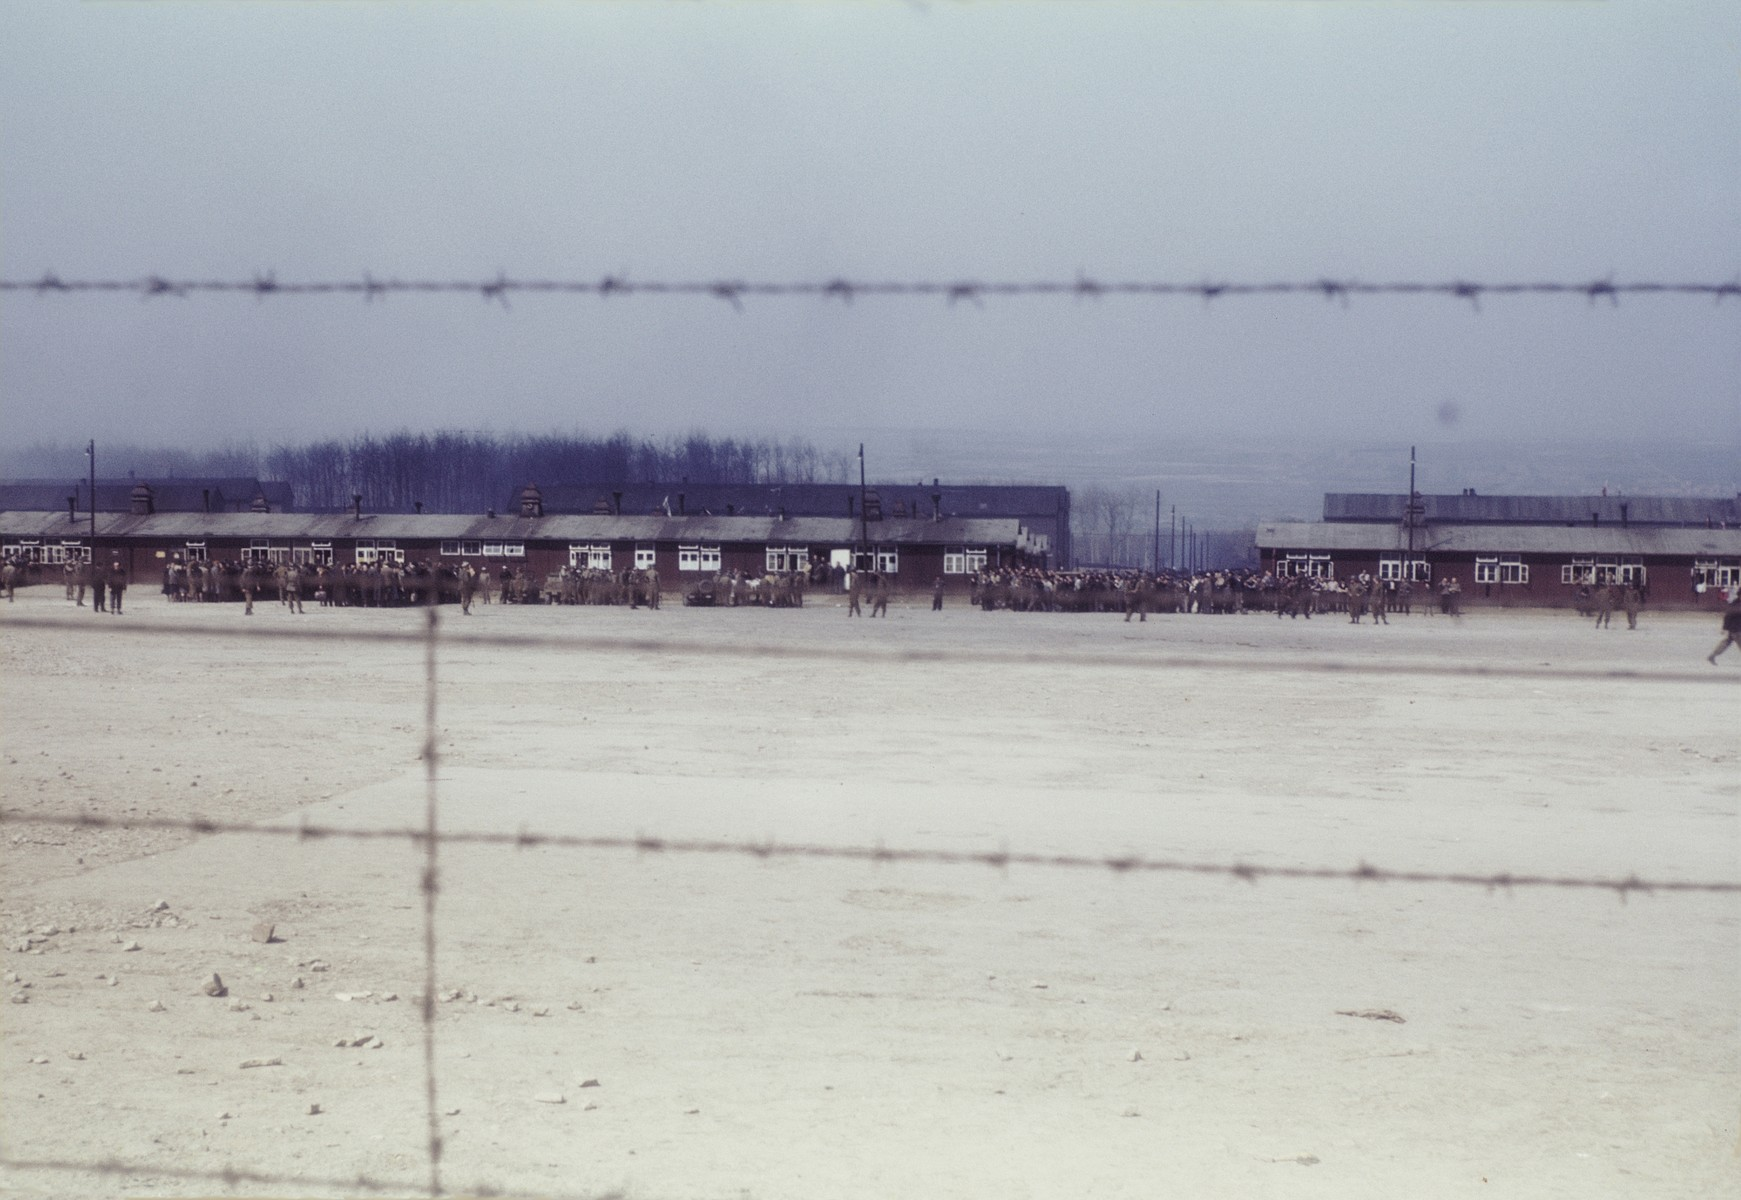 View through the barbed wire fence of survivors gathered outside a row of barracks in the newly liberated Buchenwald concentration camp.